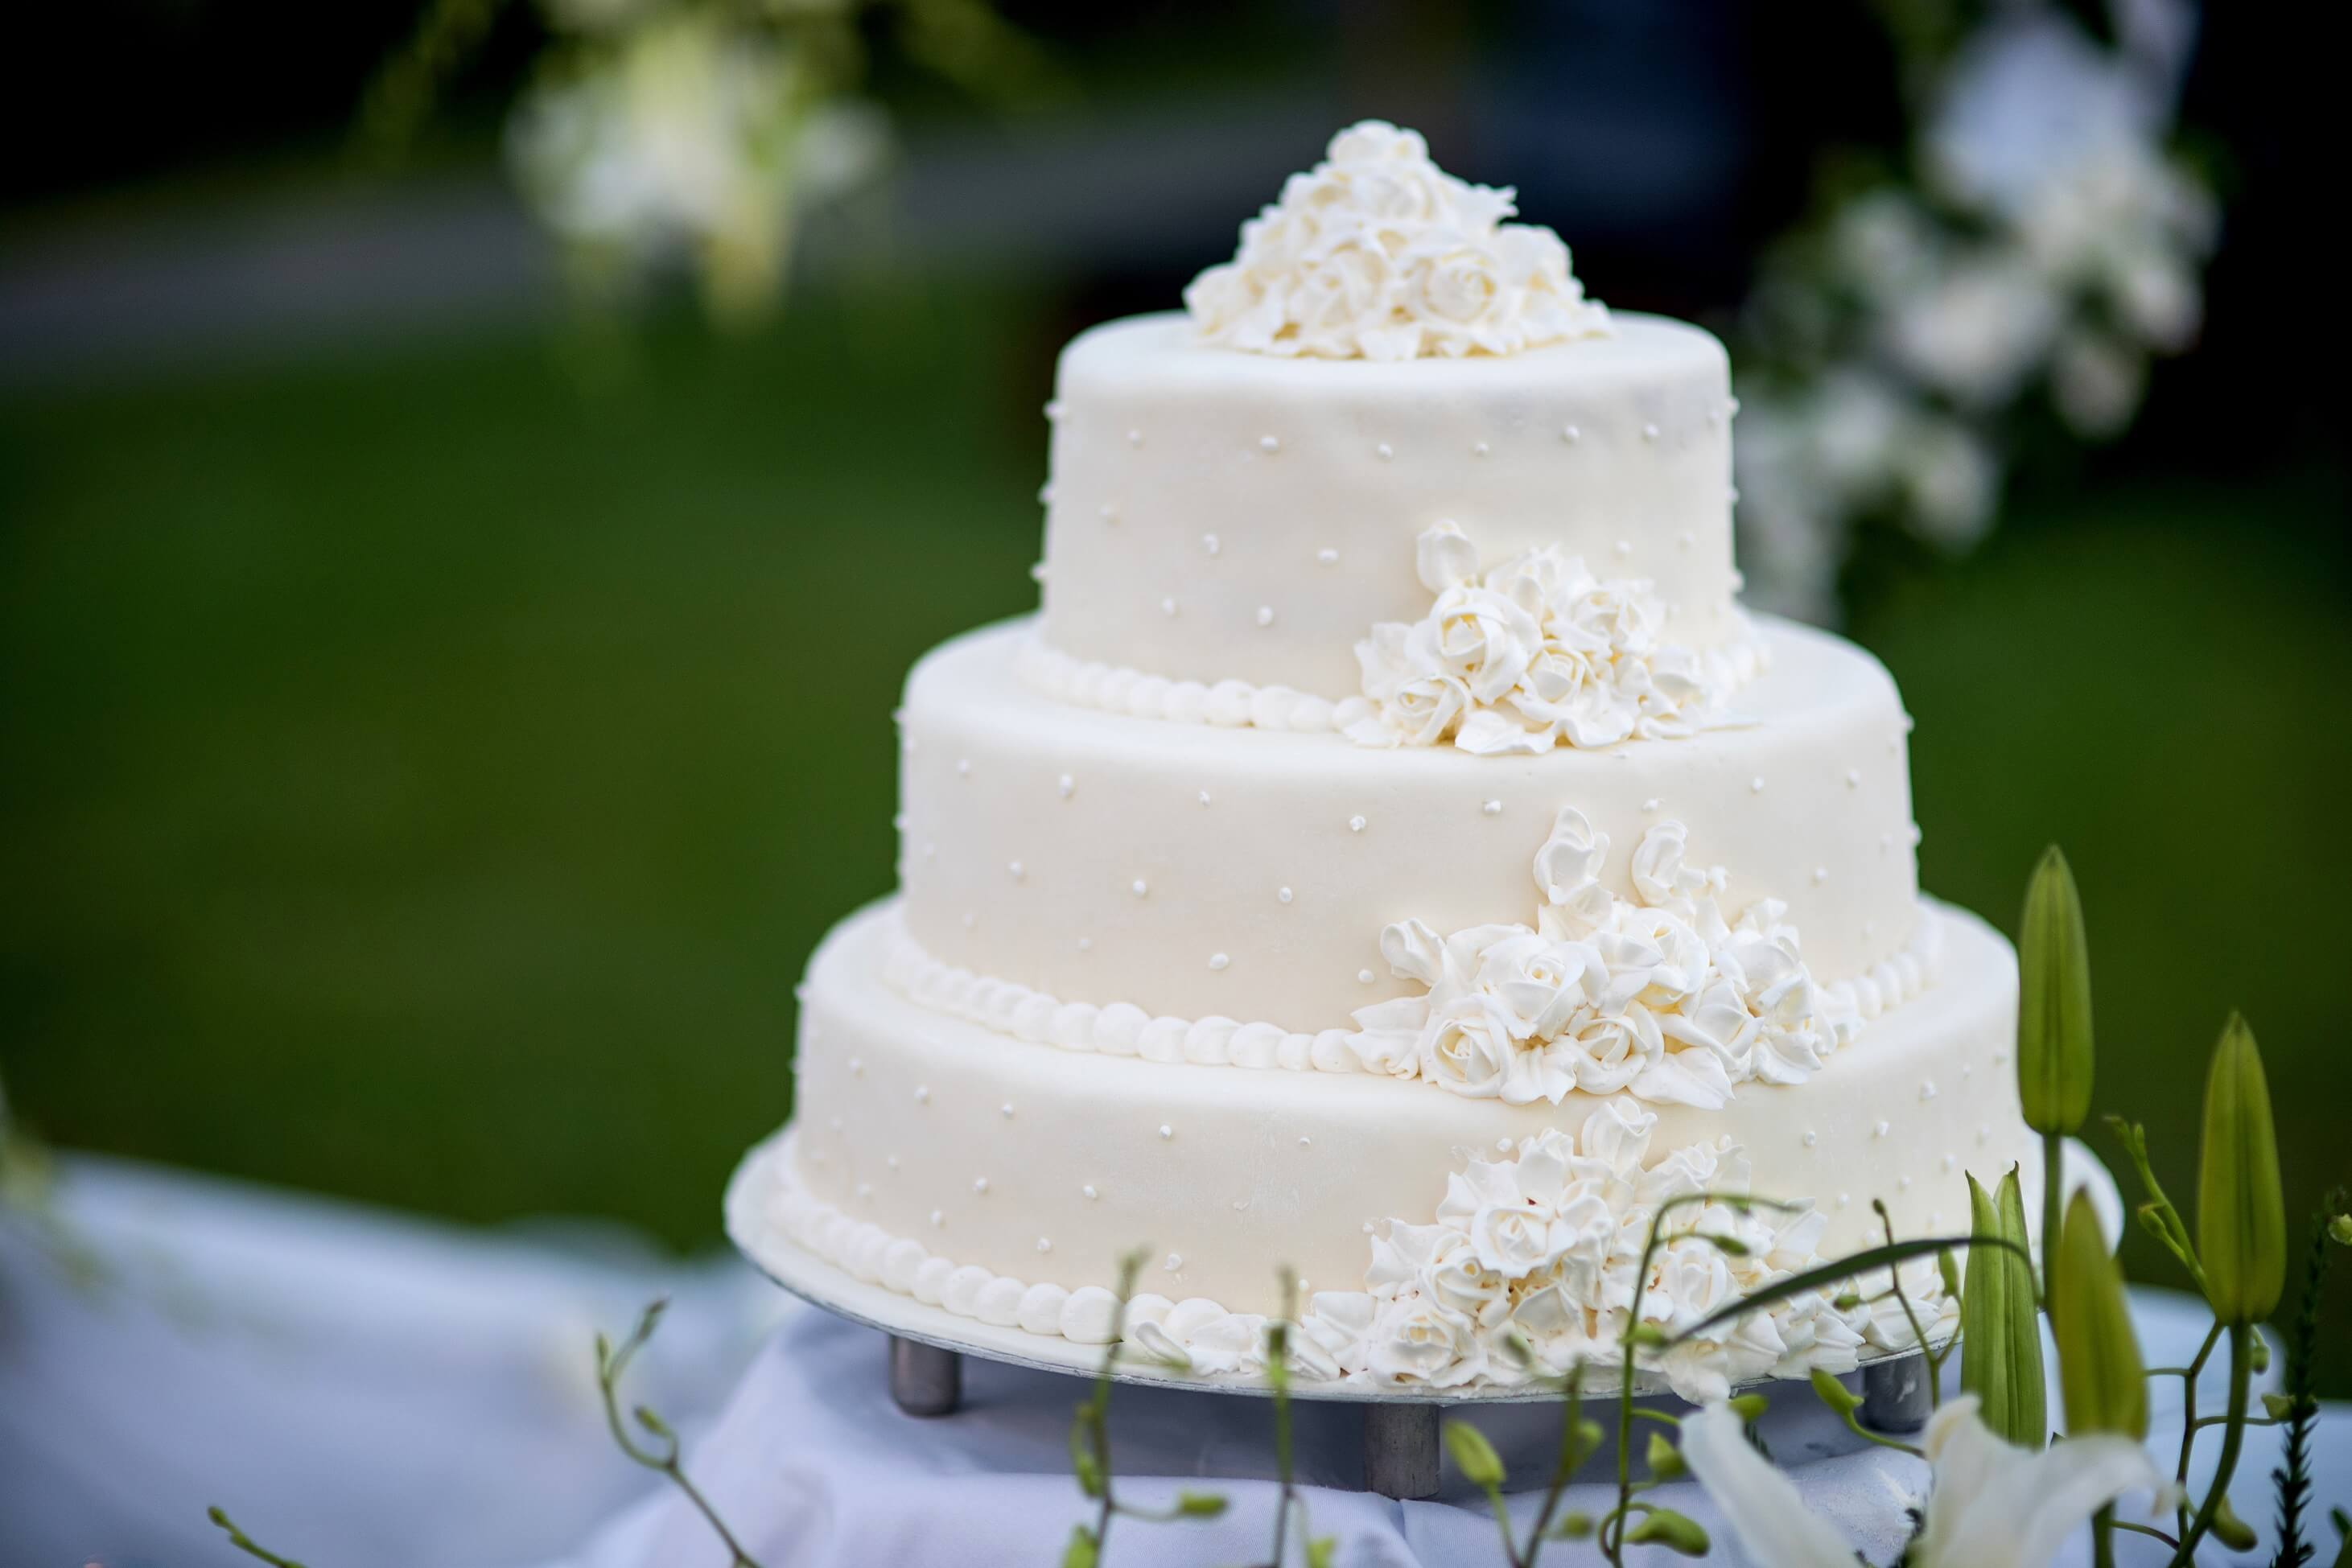 Catering Services Ogden, Utah: How can I control how much my guests ...